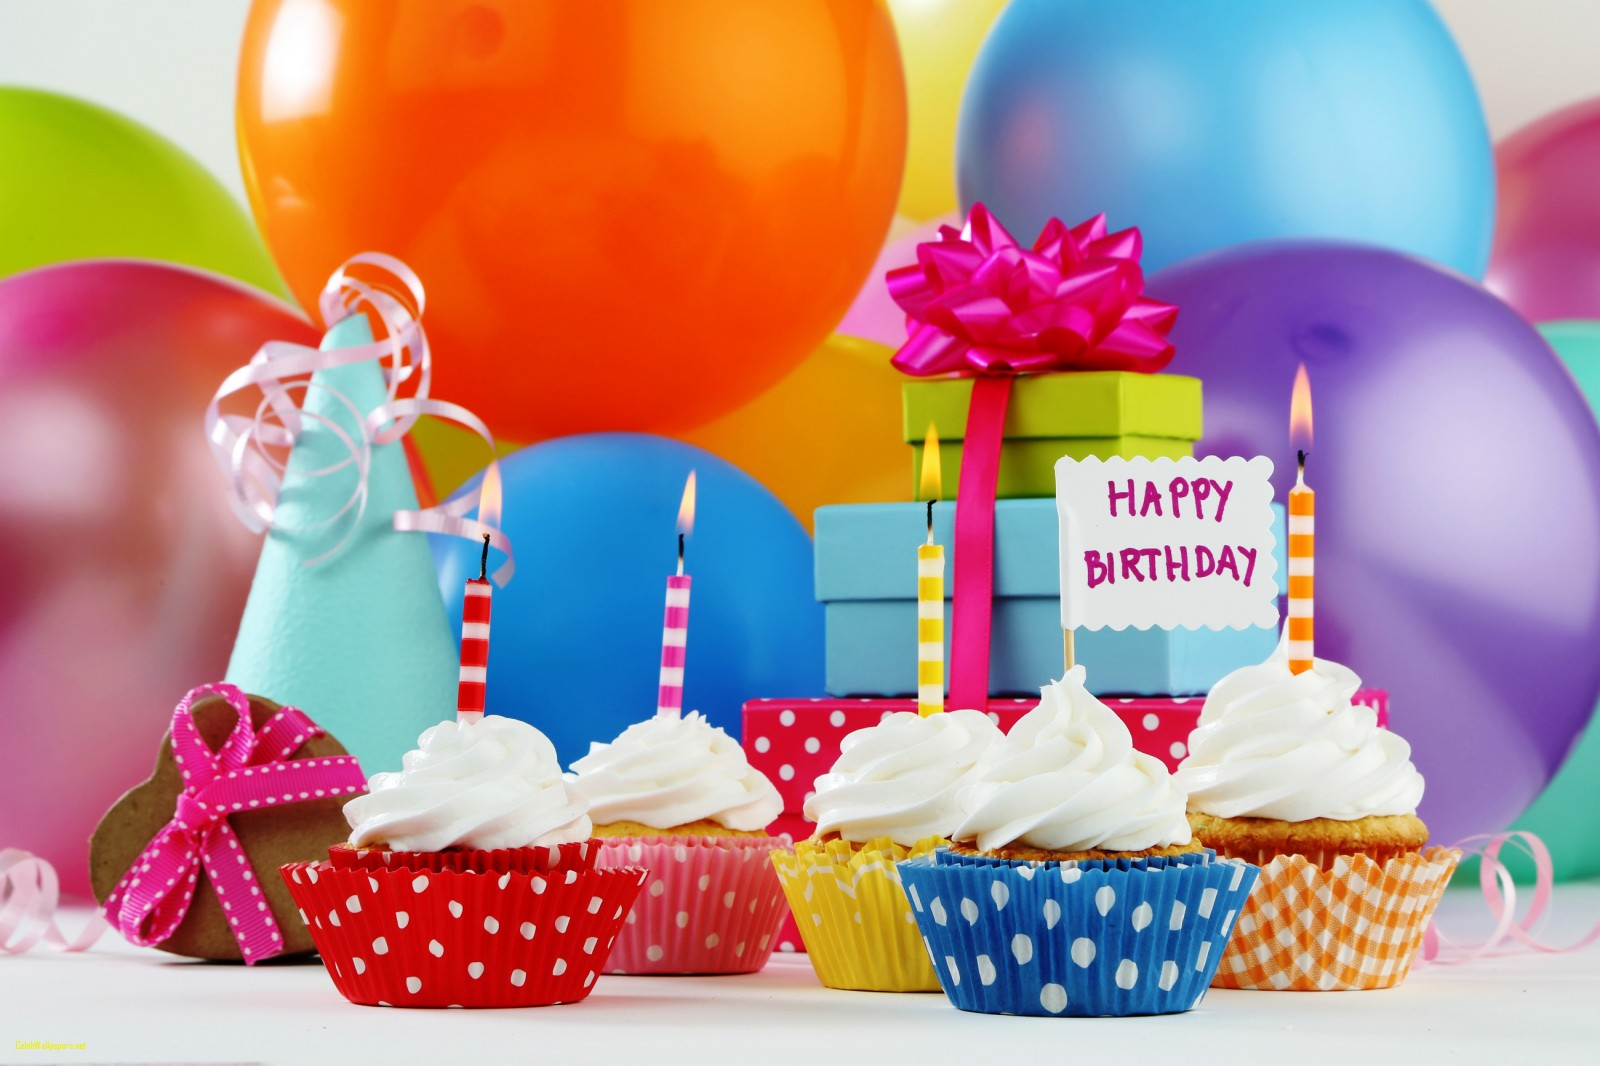 bday images download ; happy-bday-images-happy-birthday-balloons-hd-free-download-of-happy-bday-images